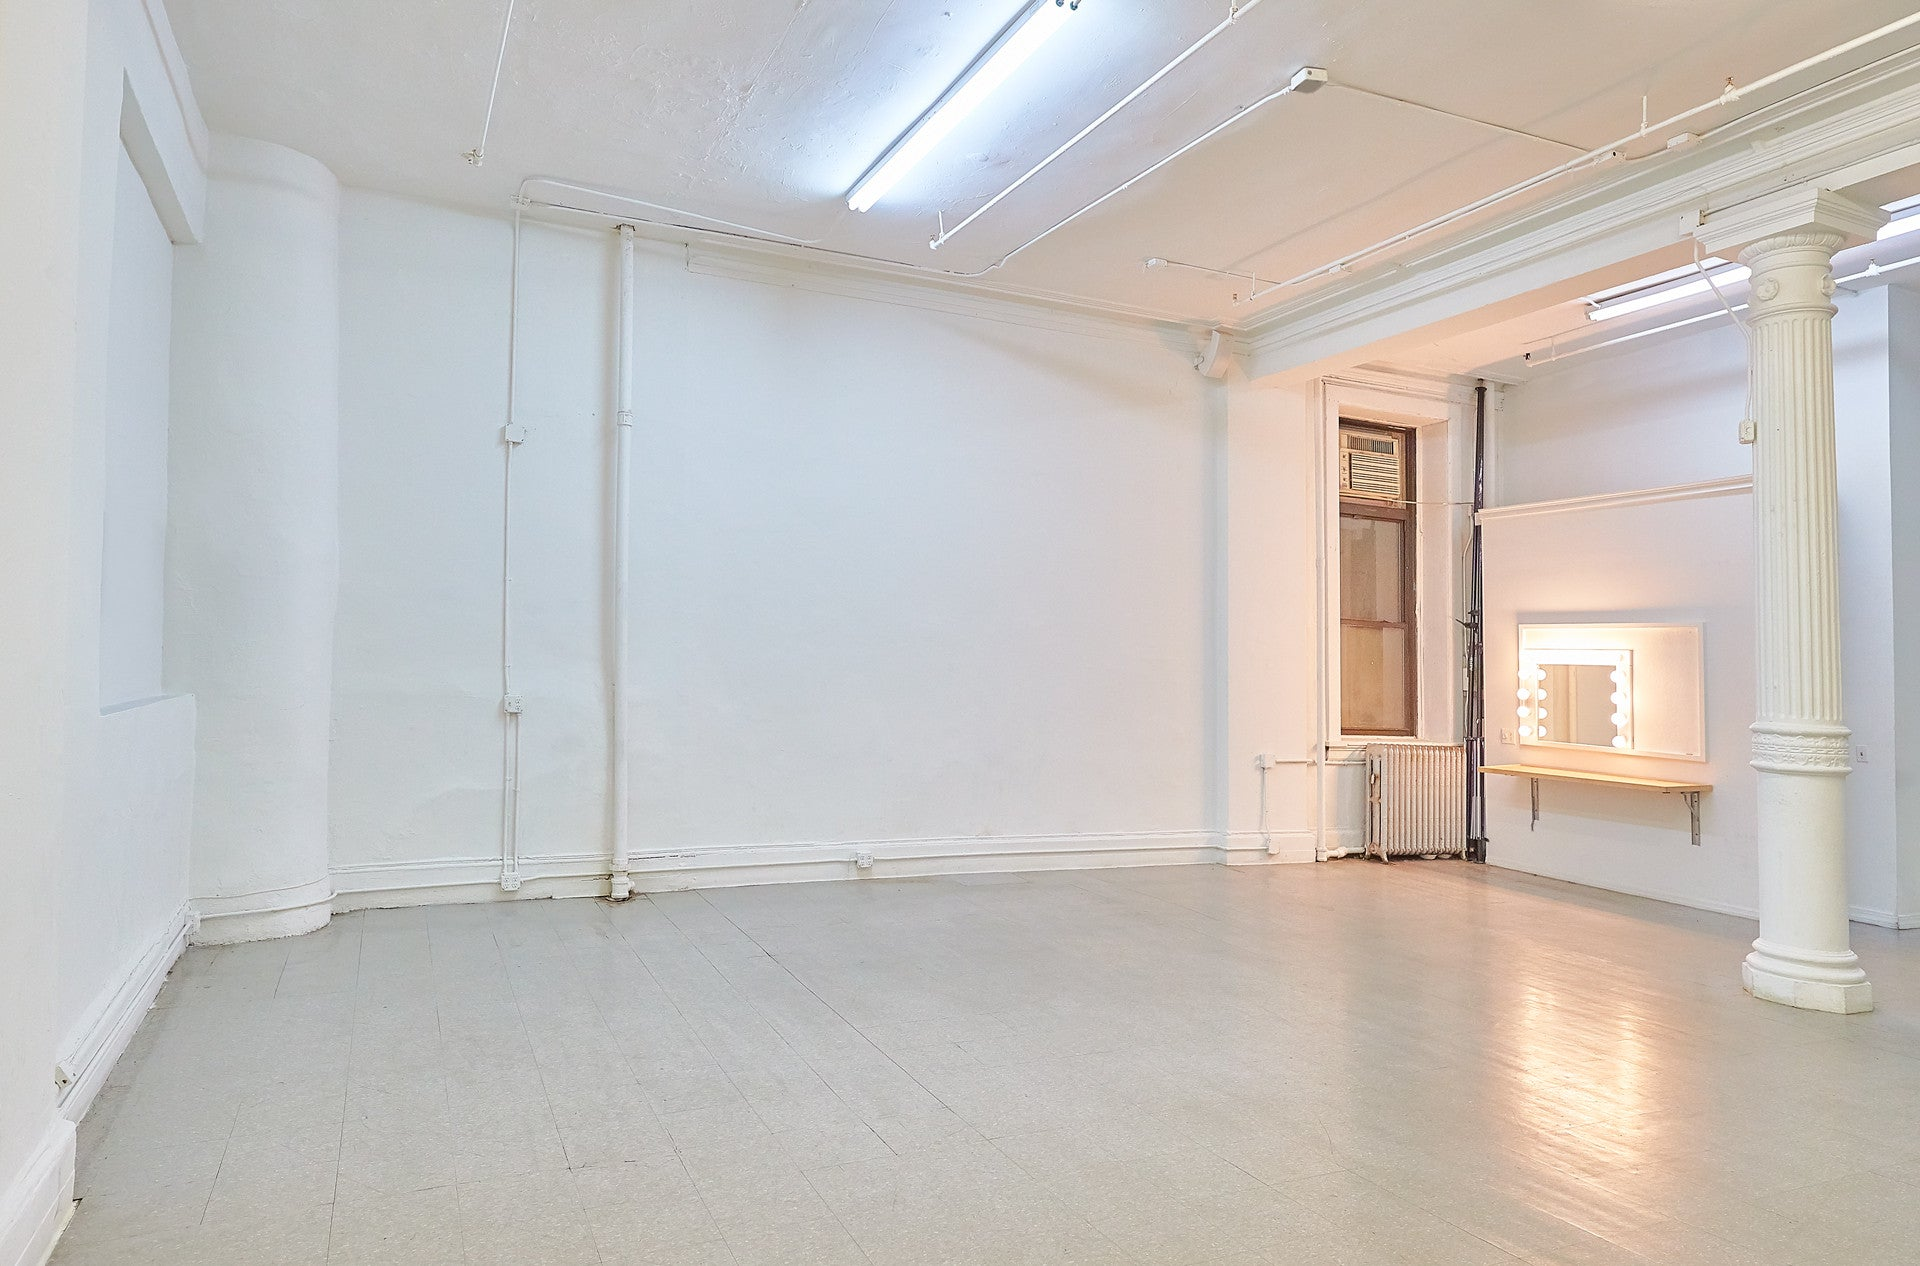 NYC SHOWROOM SPACE RENTAL